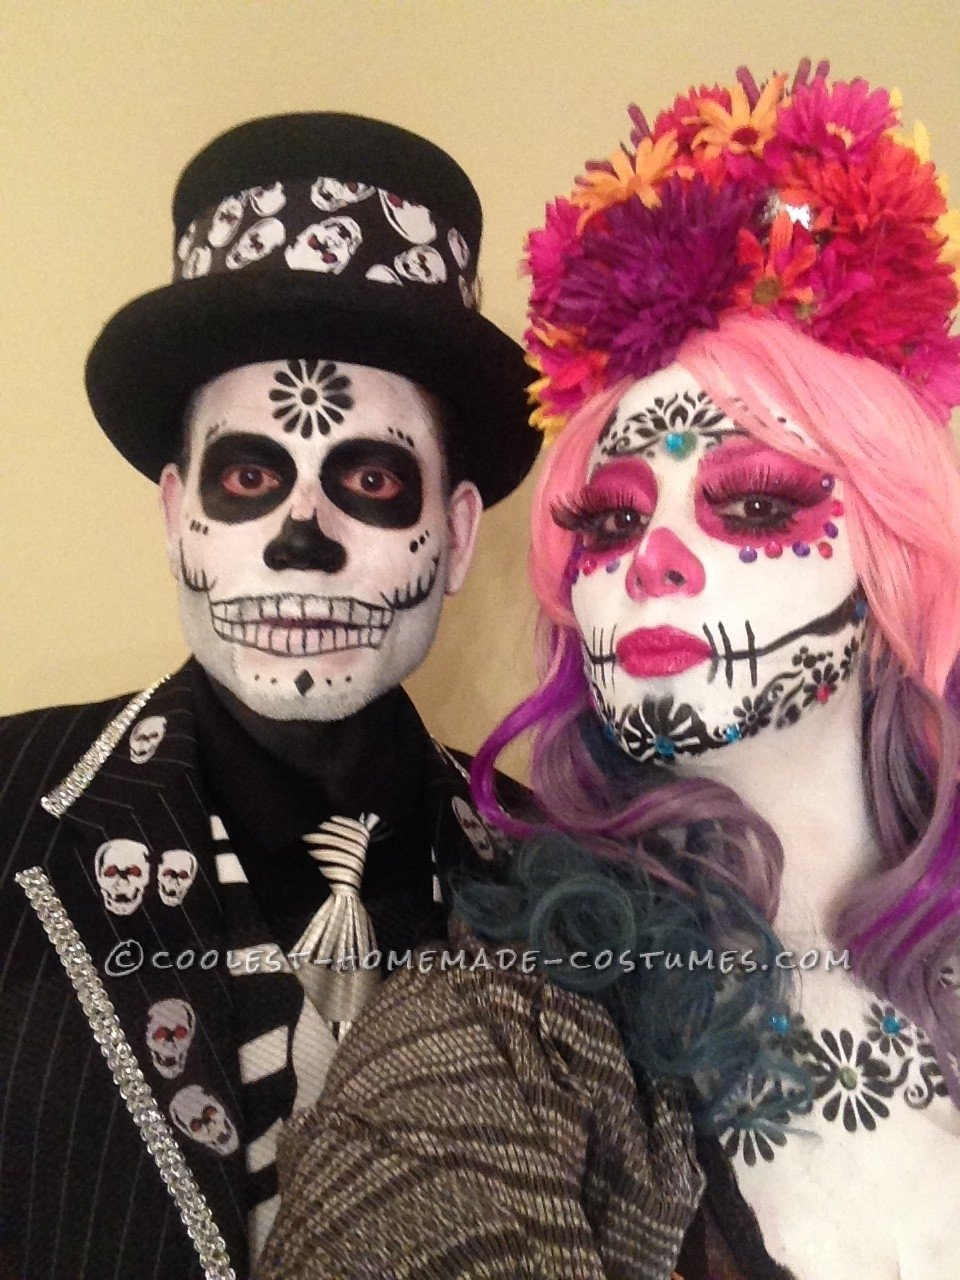 10 Nice Day Of The Dead Costumes Ideas 50 coolest homemade dia de los muertos costumes 1 2020